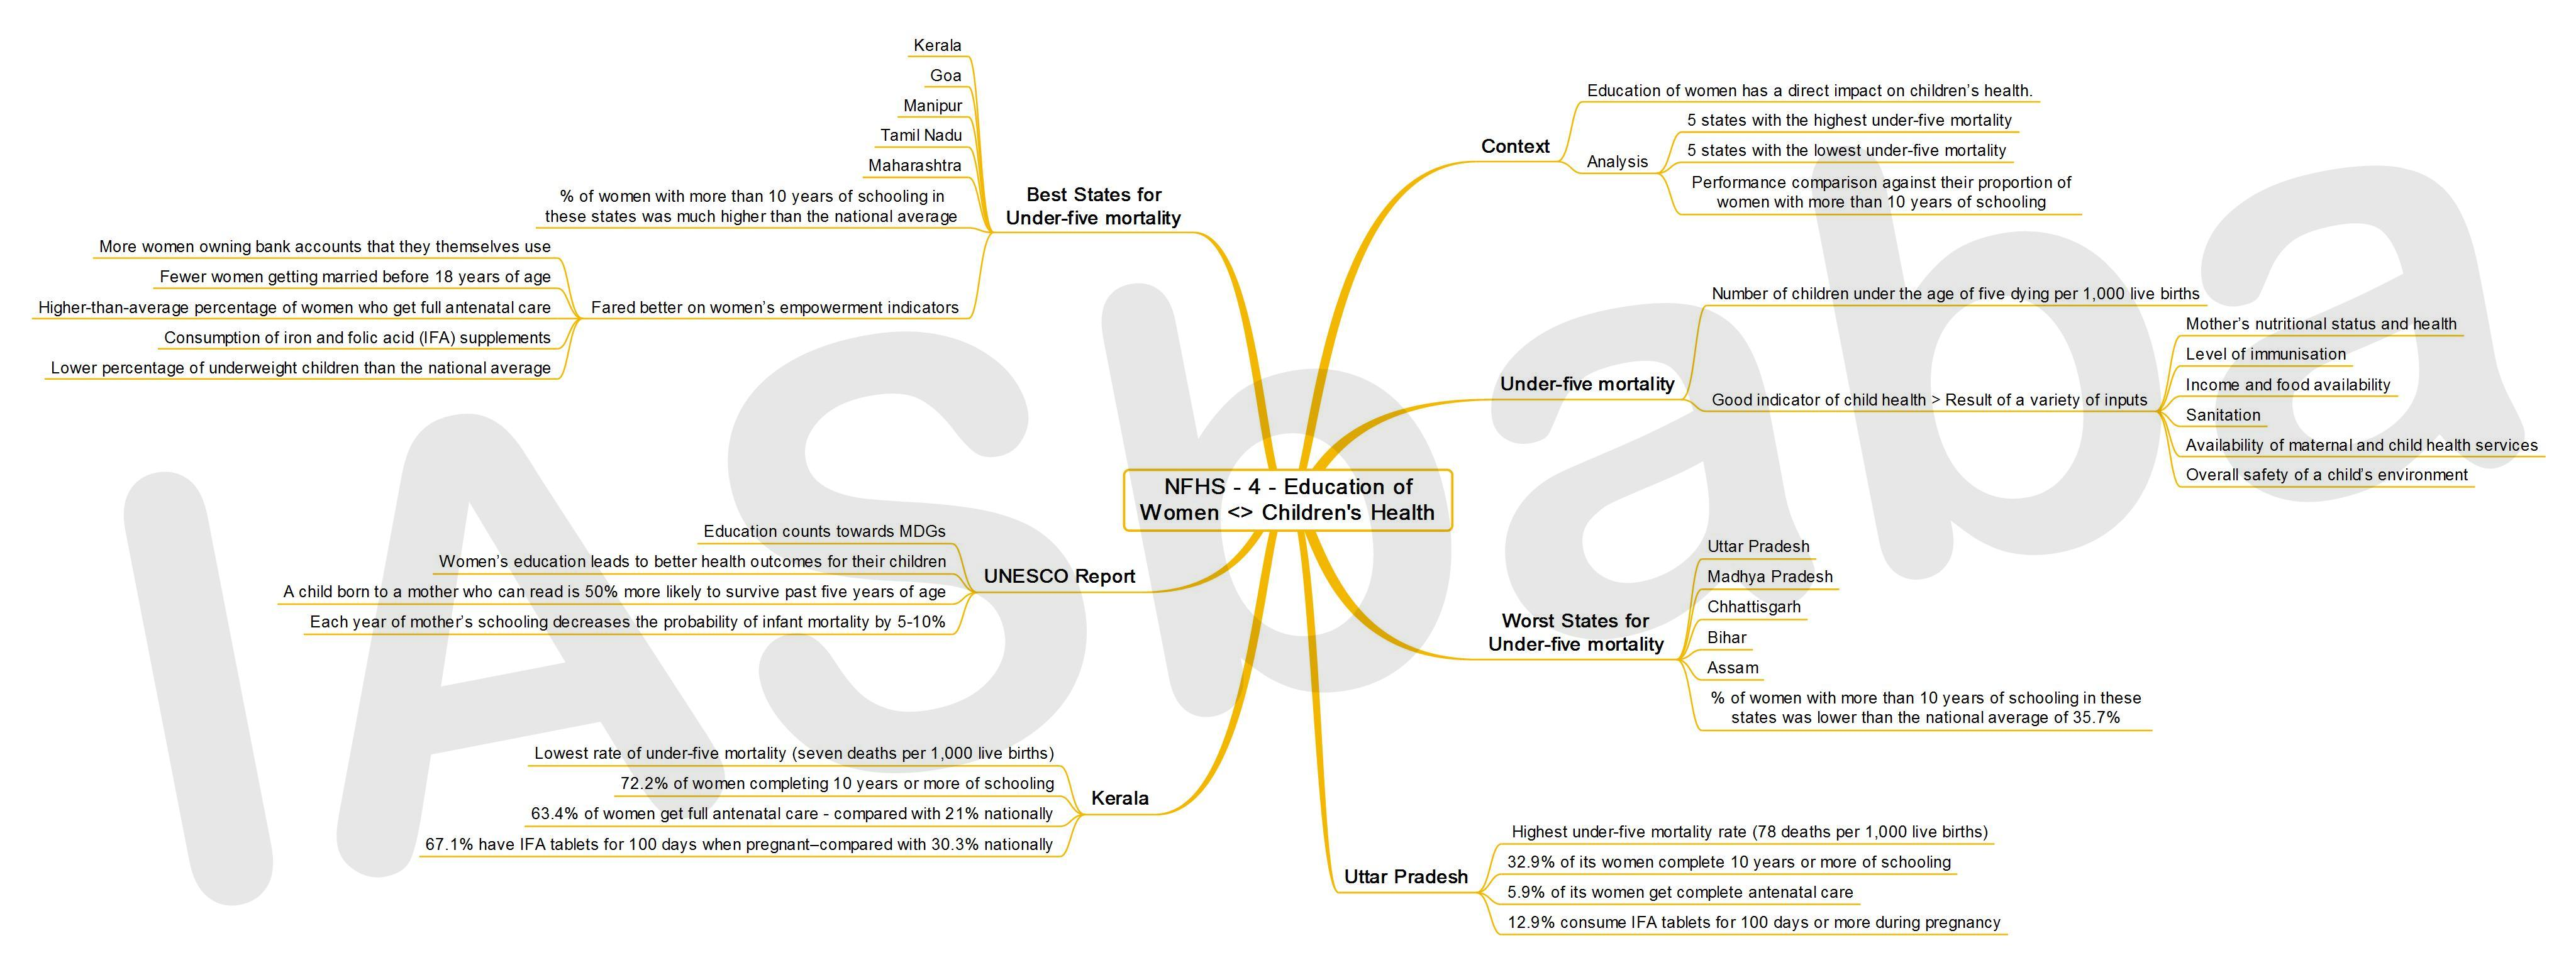 IASbaba's MINDMAP : Issue - National Family Health Survey 2015-16 (NFHS-4) - Education of Women & Children's Health